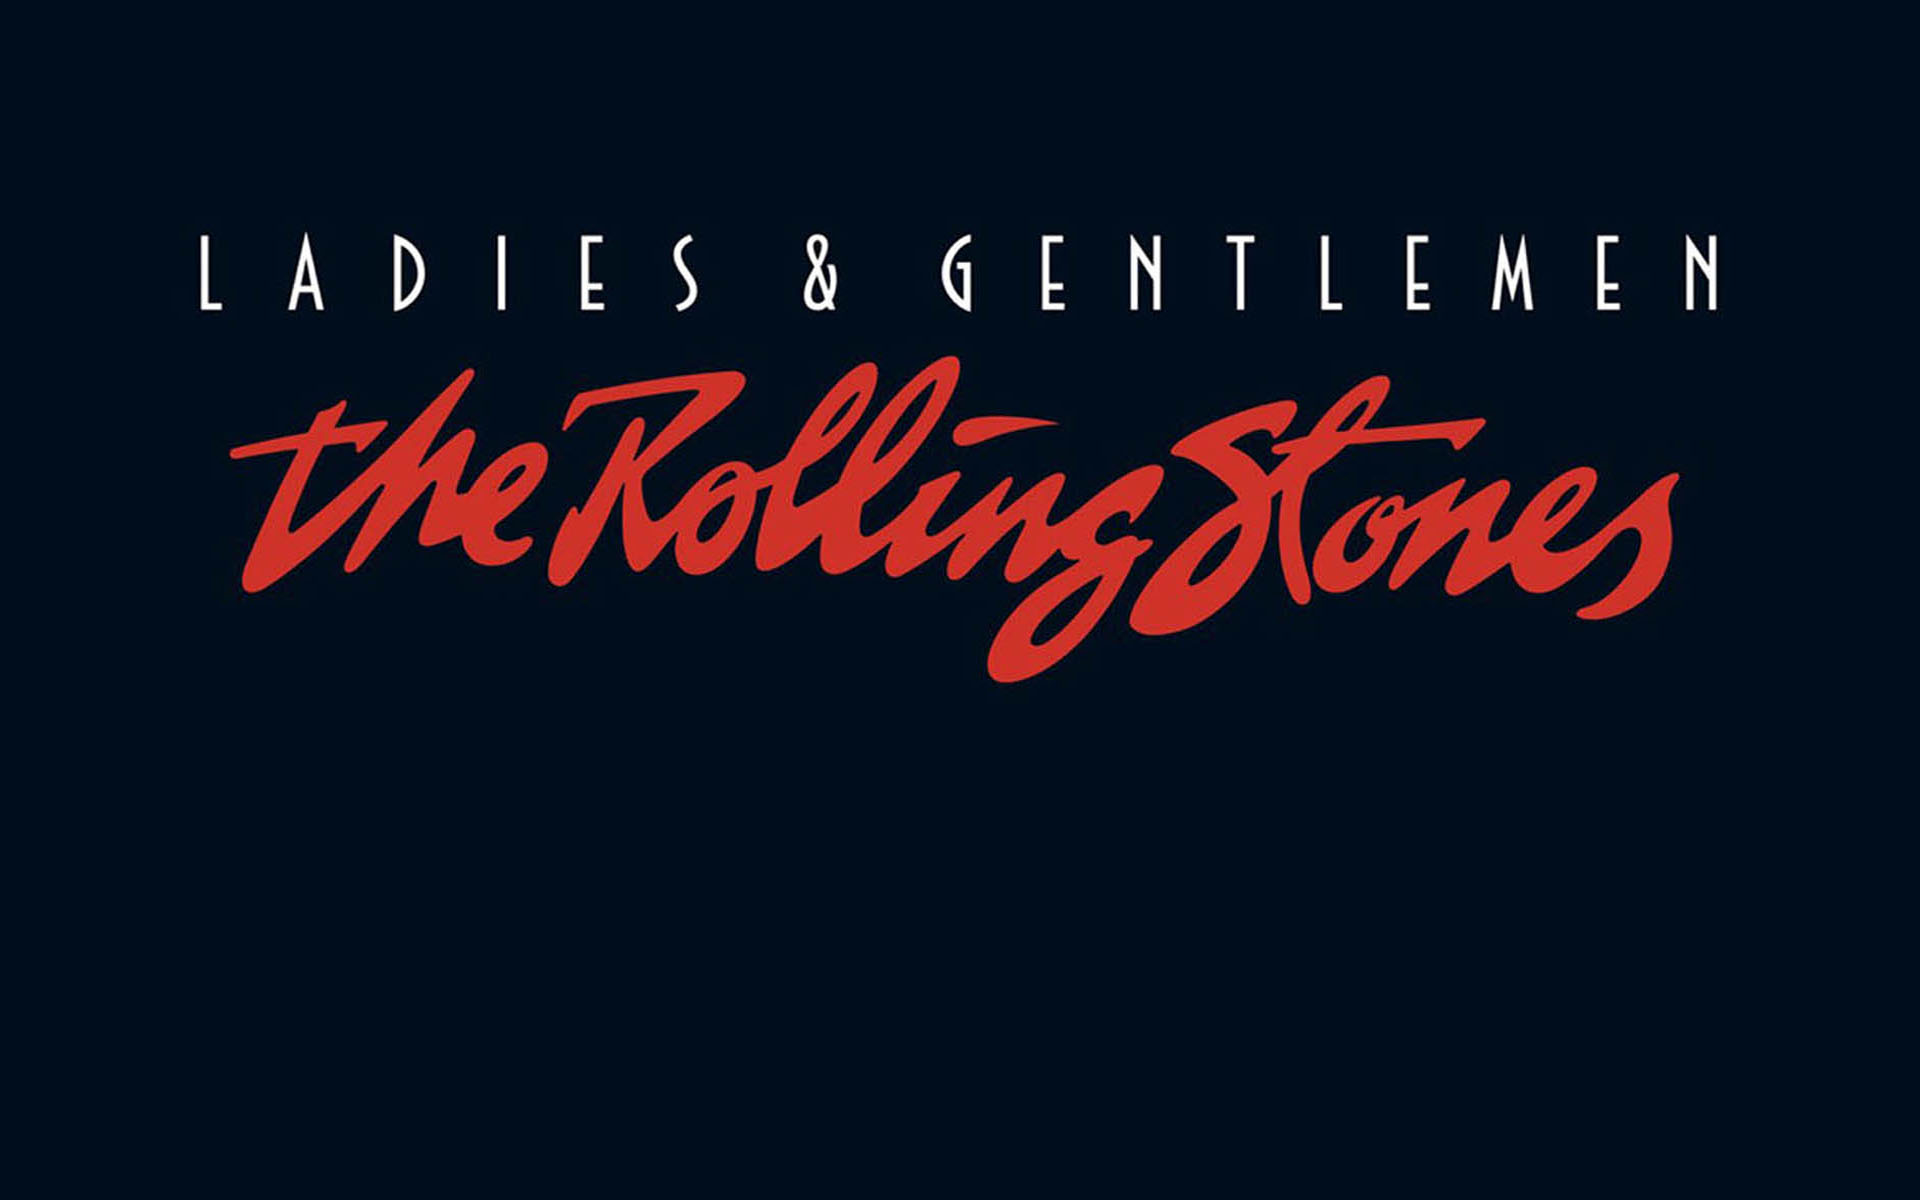 The Rolling Stones Wallpaper 5 1920x1200